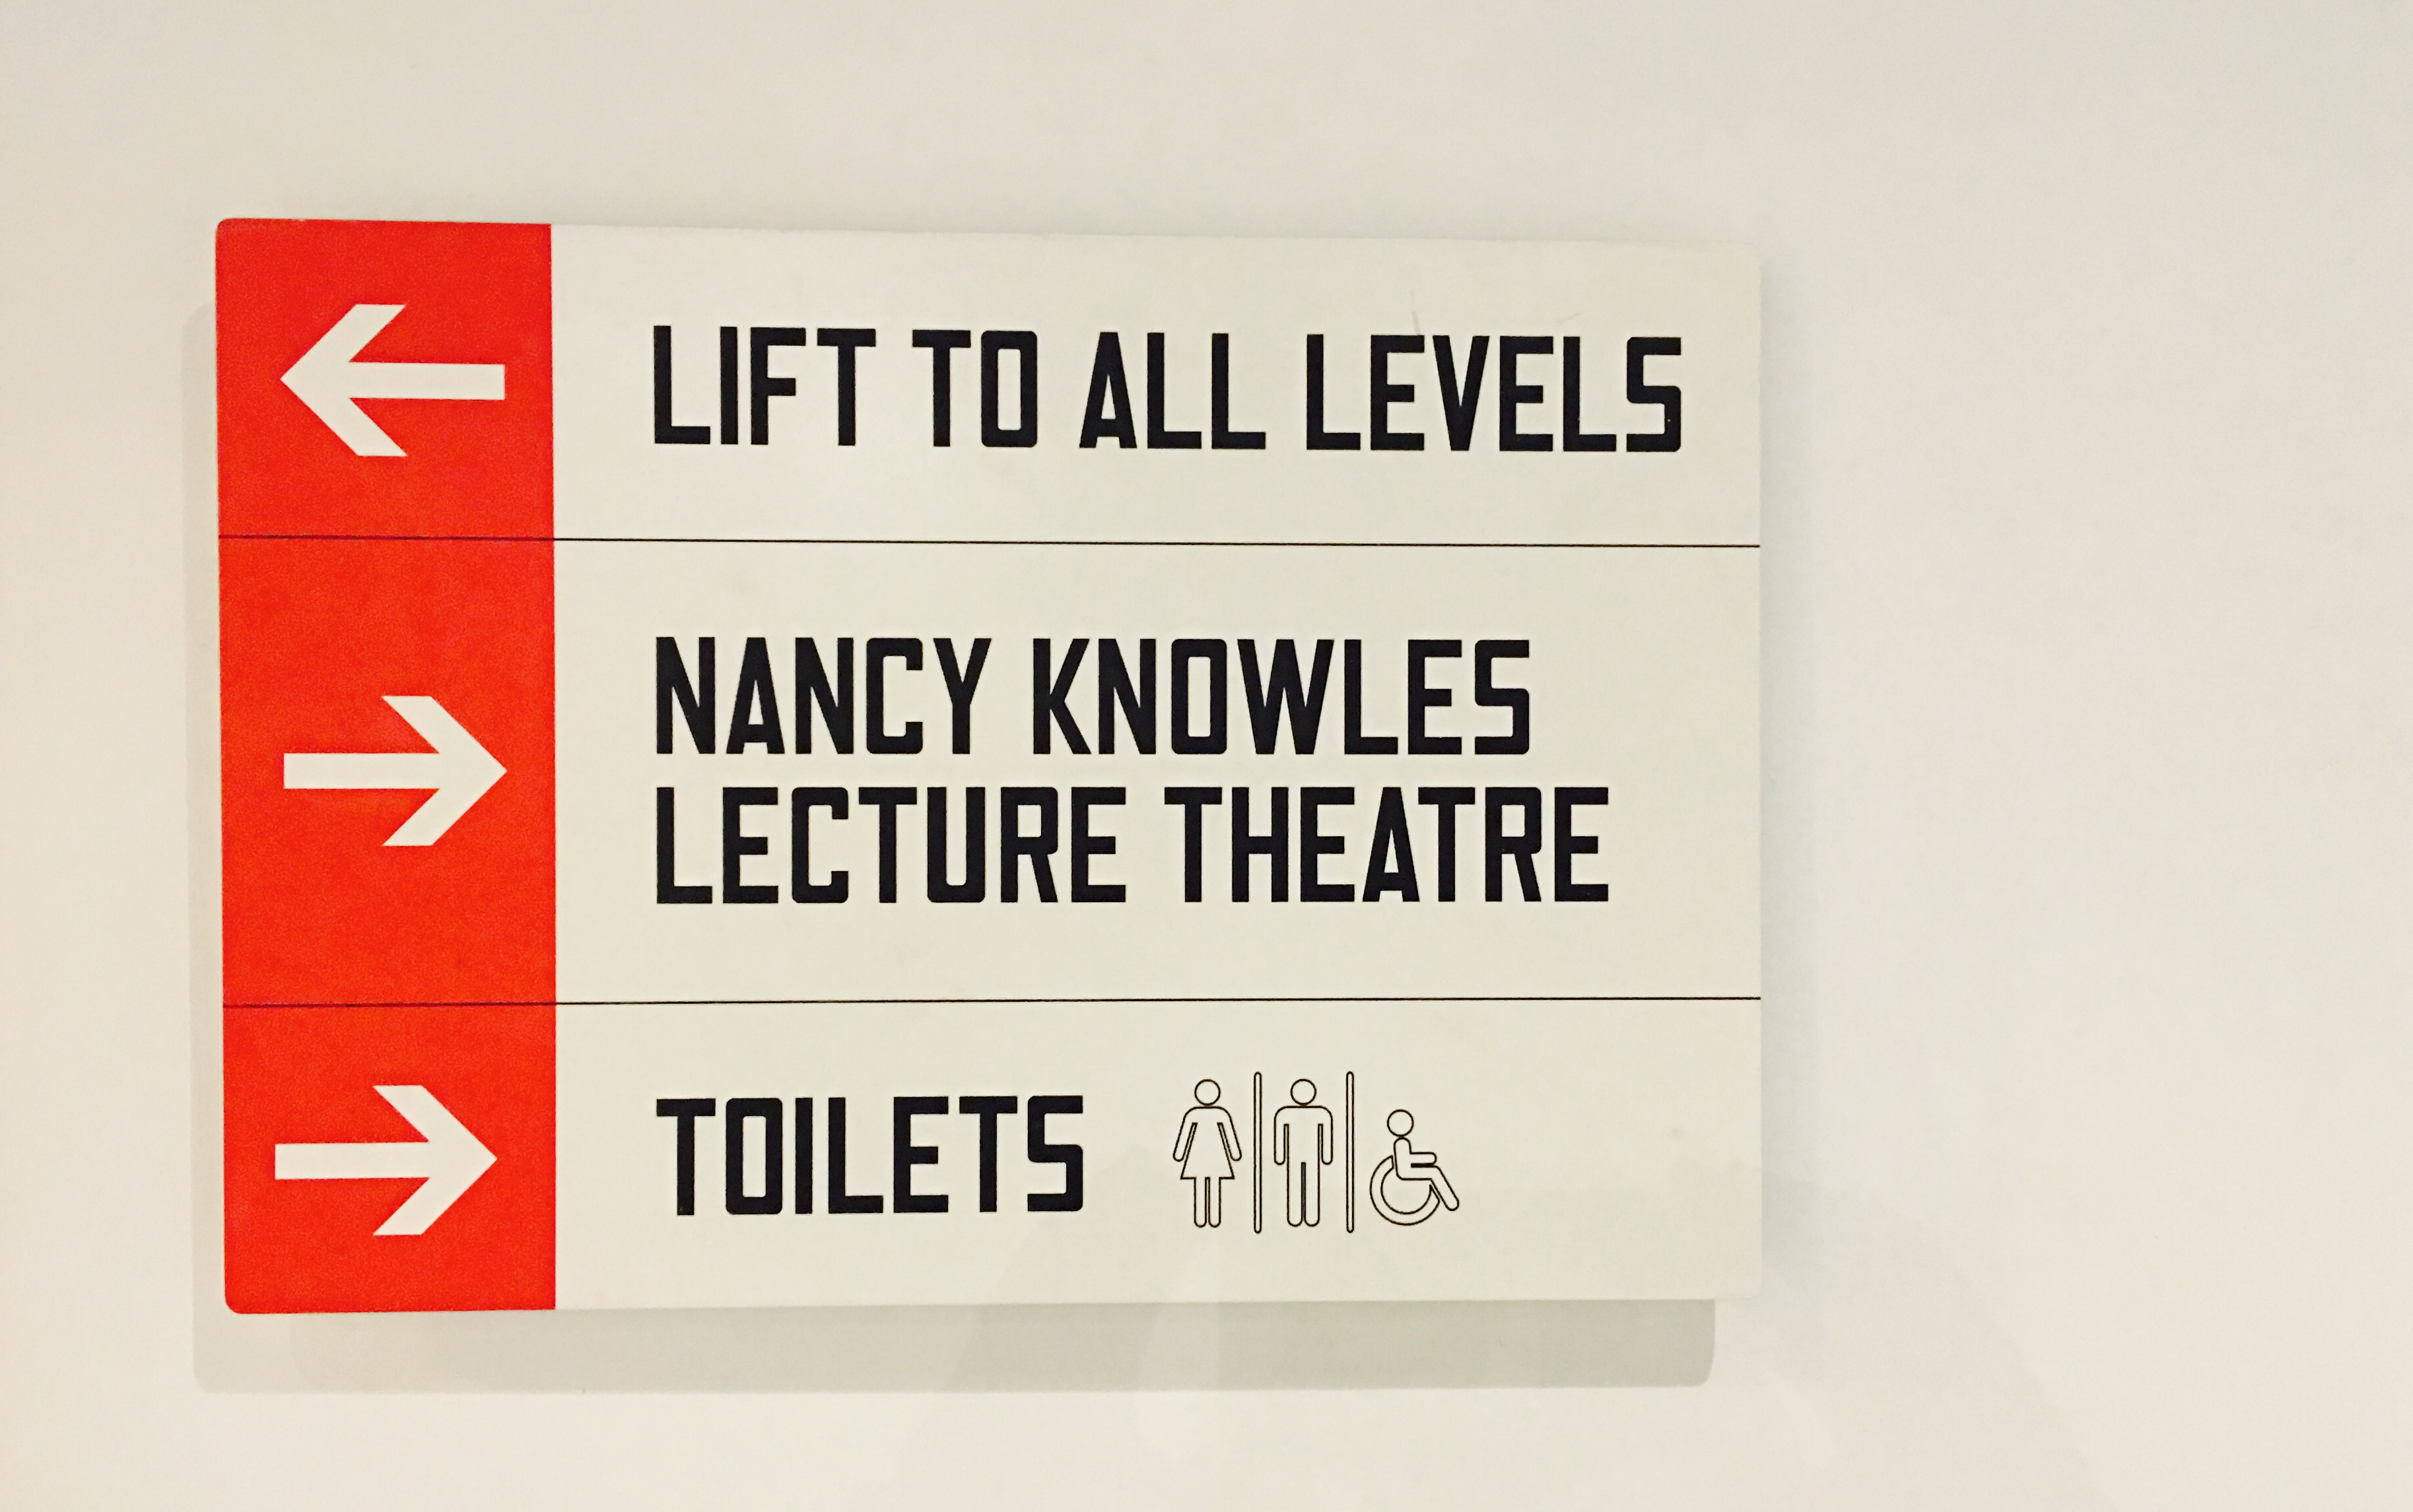 Nancy-Knowles-Lecture-Theatre